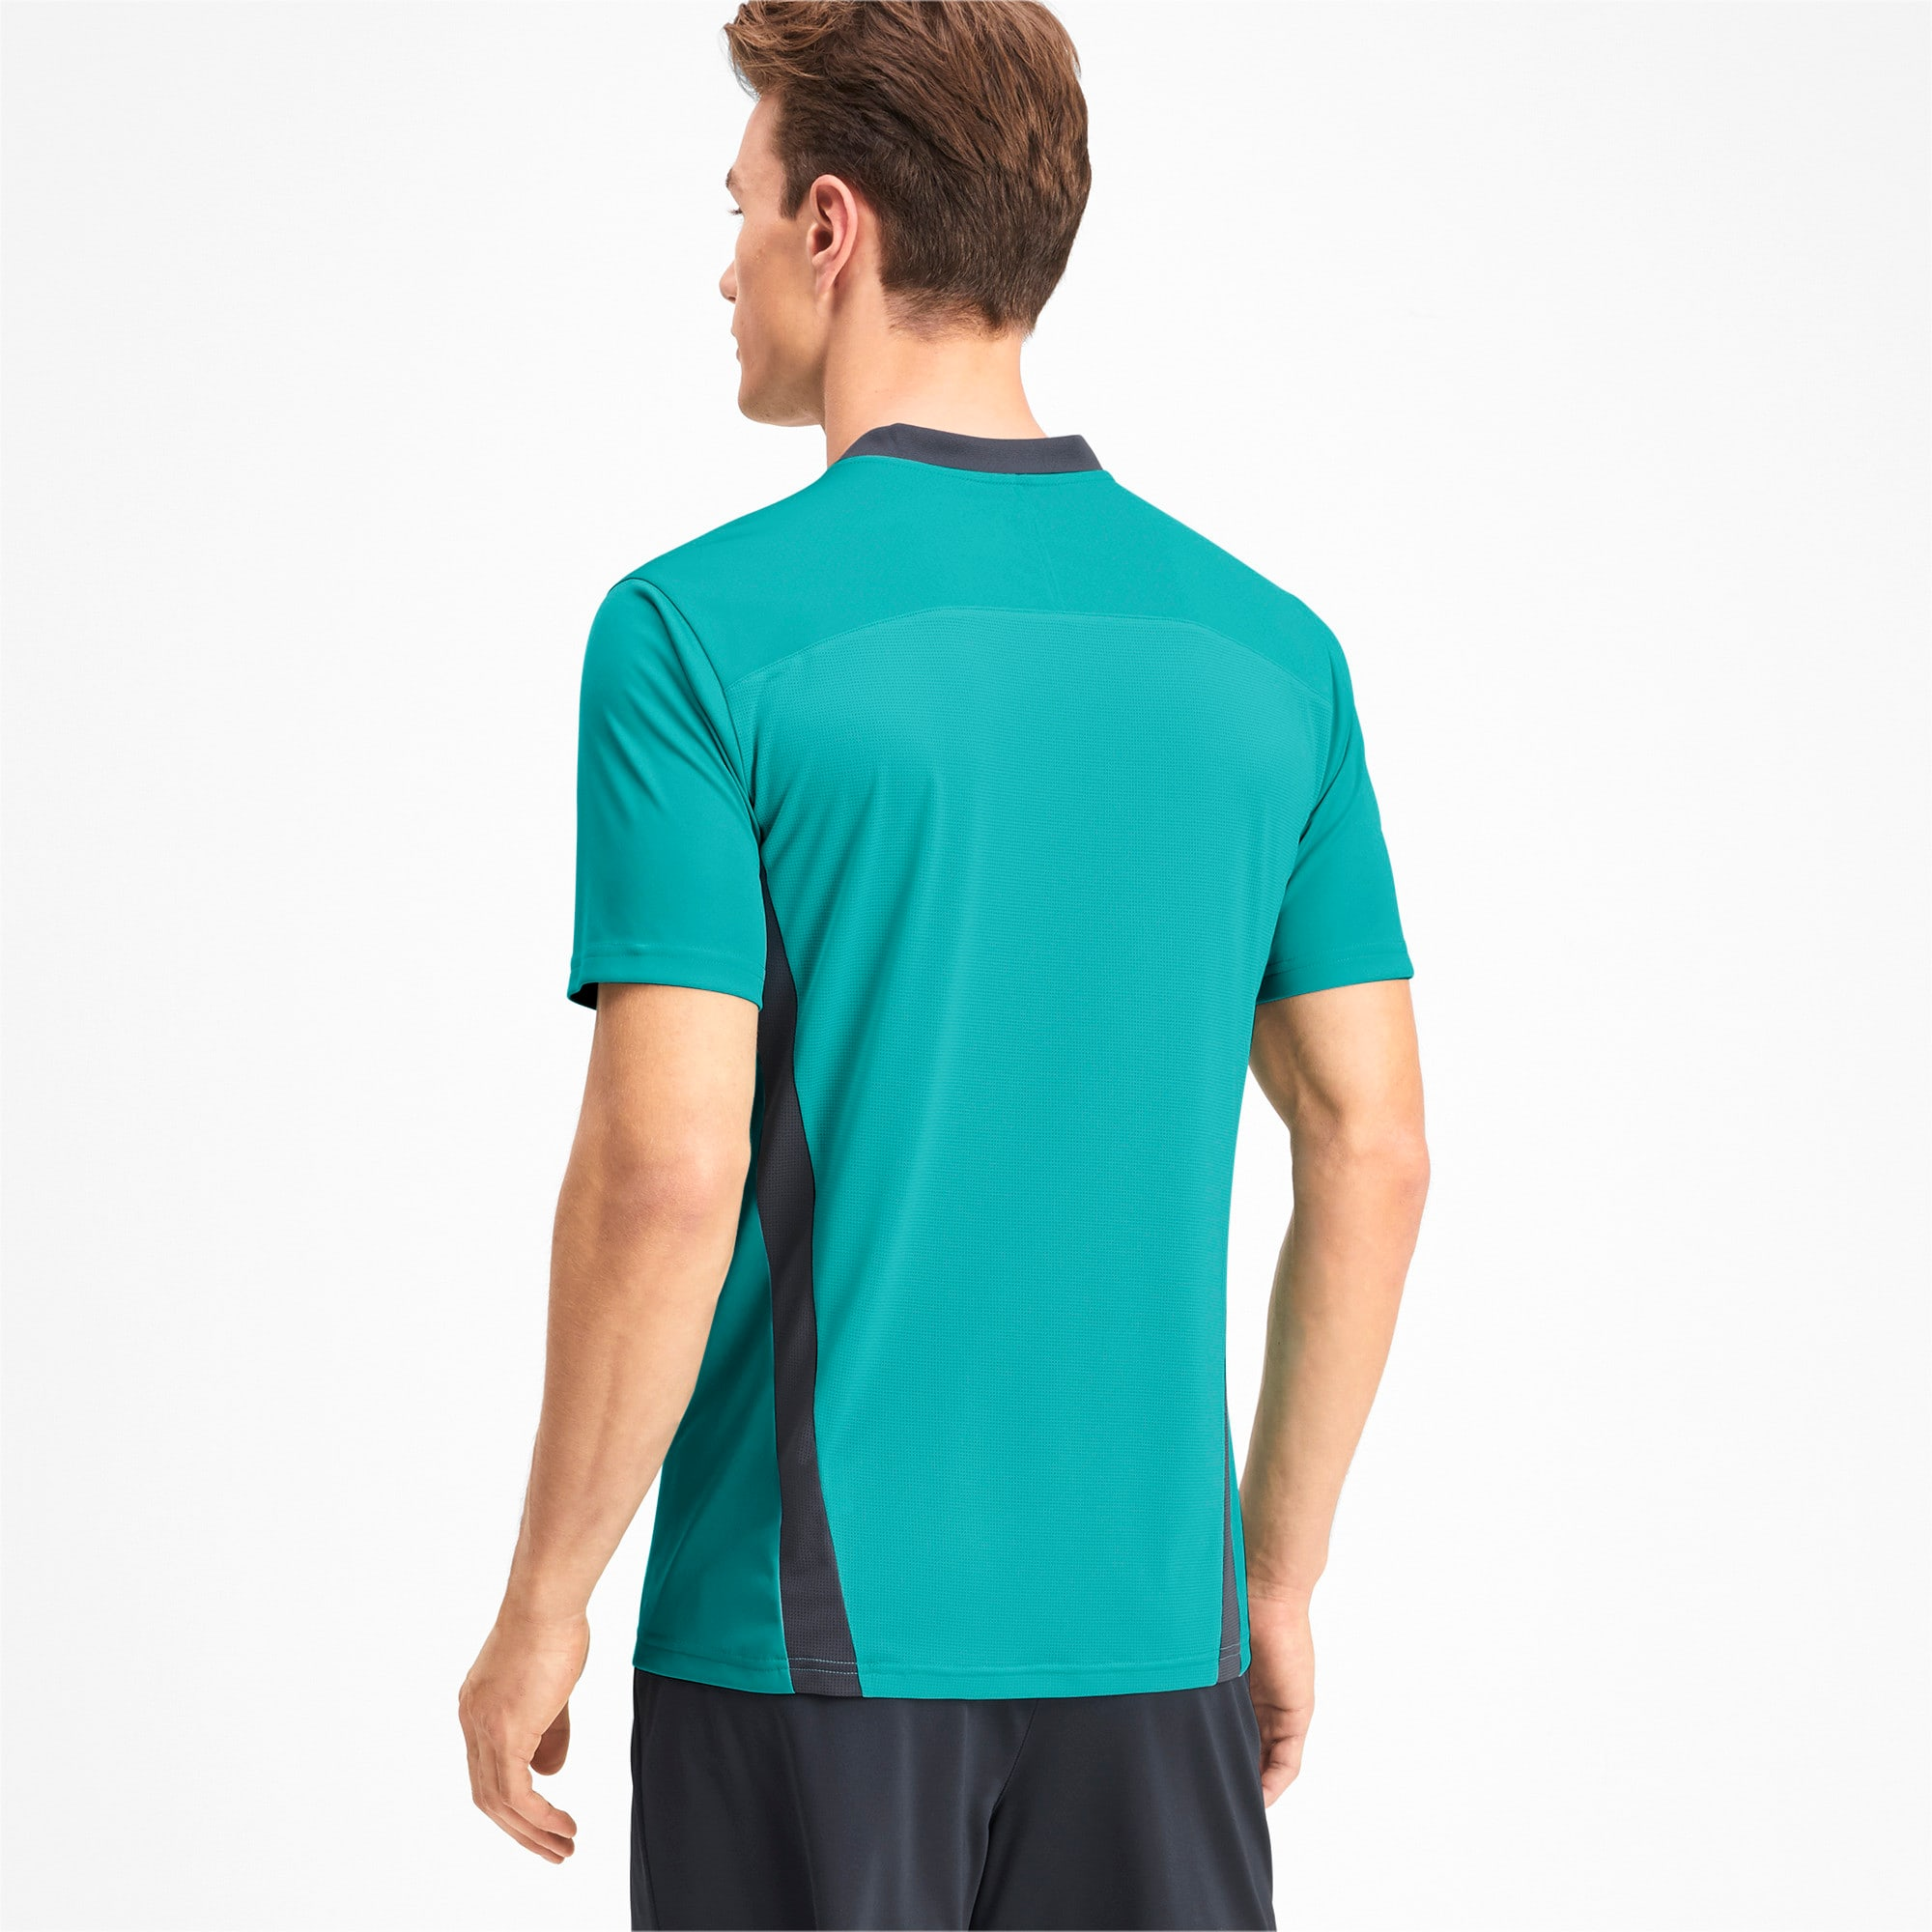 Thumbnail 2 of Men's Training Tee, Blue Turquoise-Ebony, medium